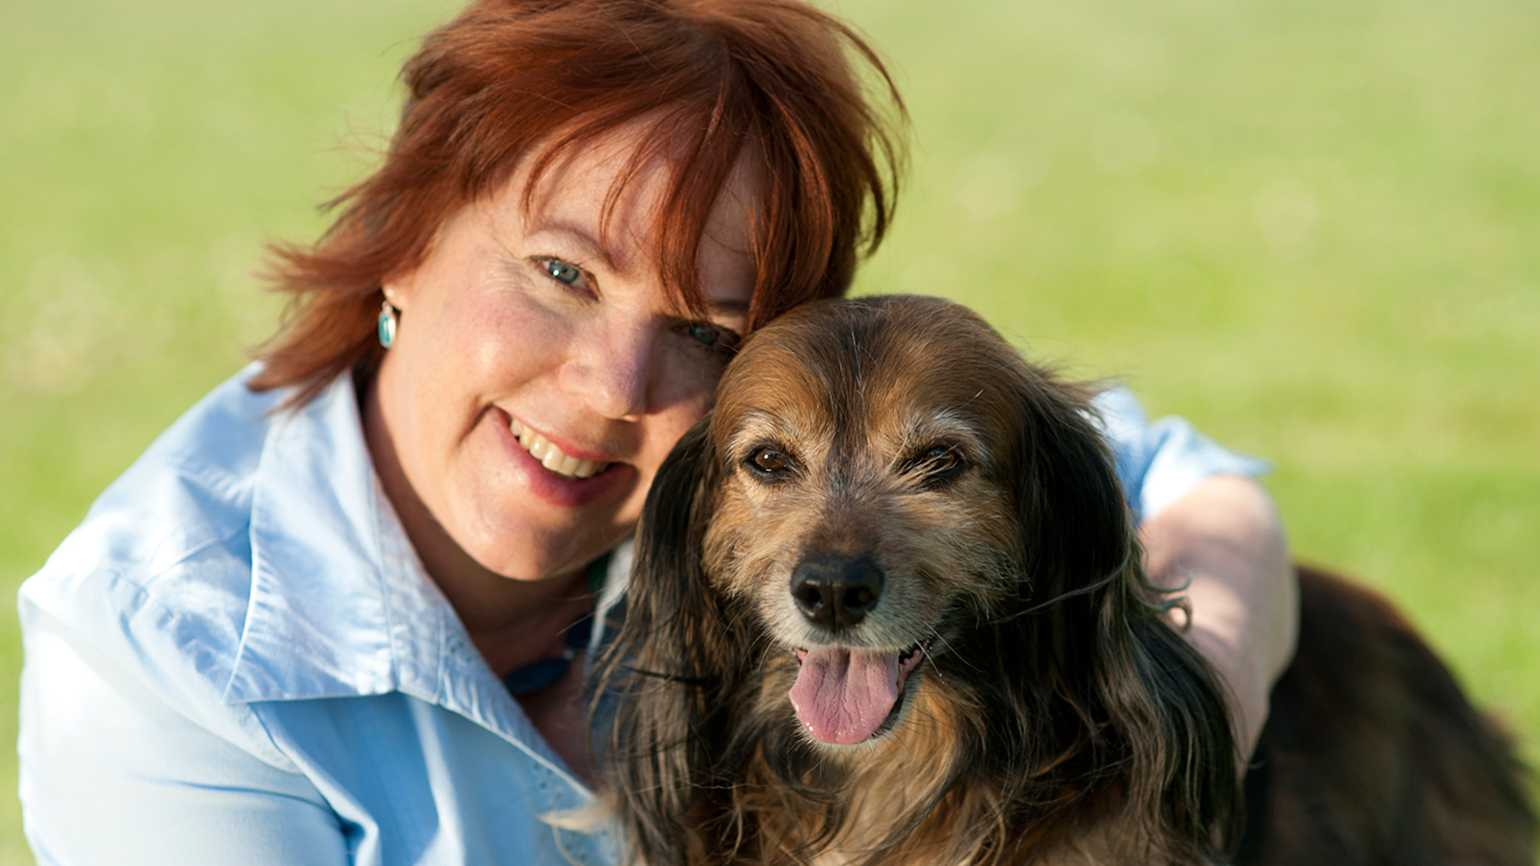 4 Tips for Coping with Your Pet's Medical Diagnosis